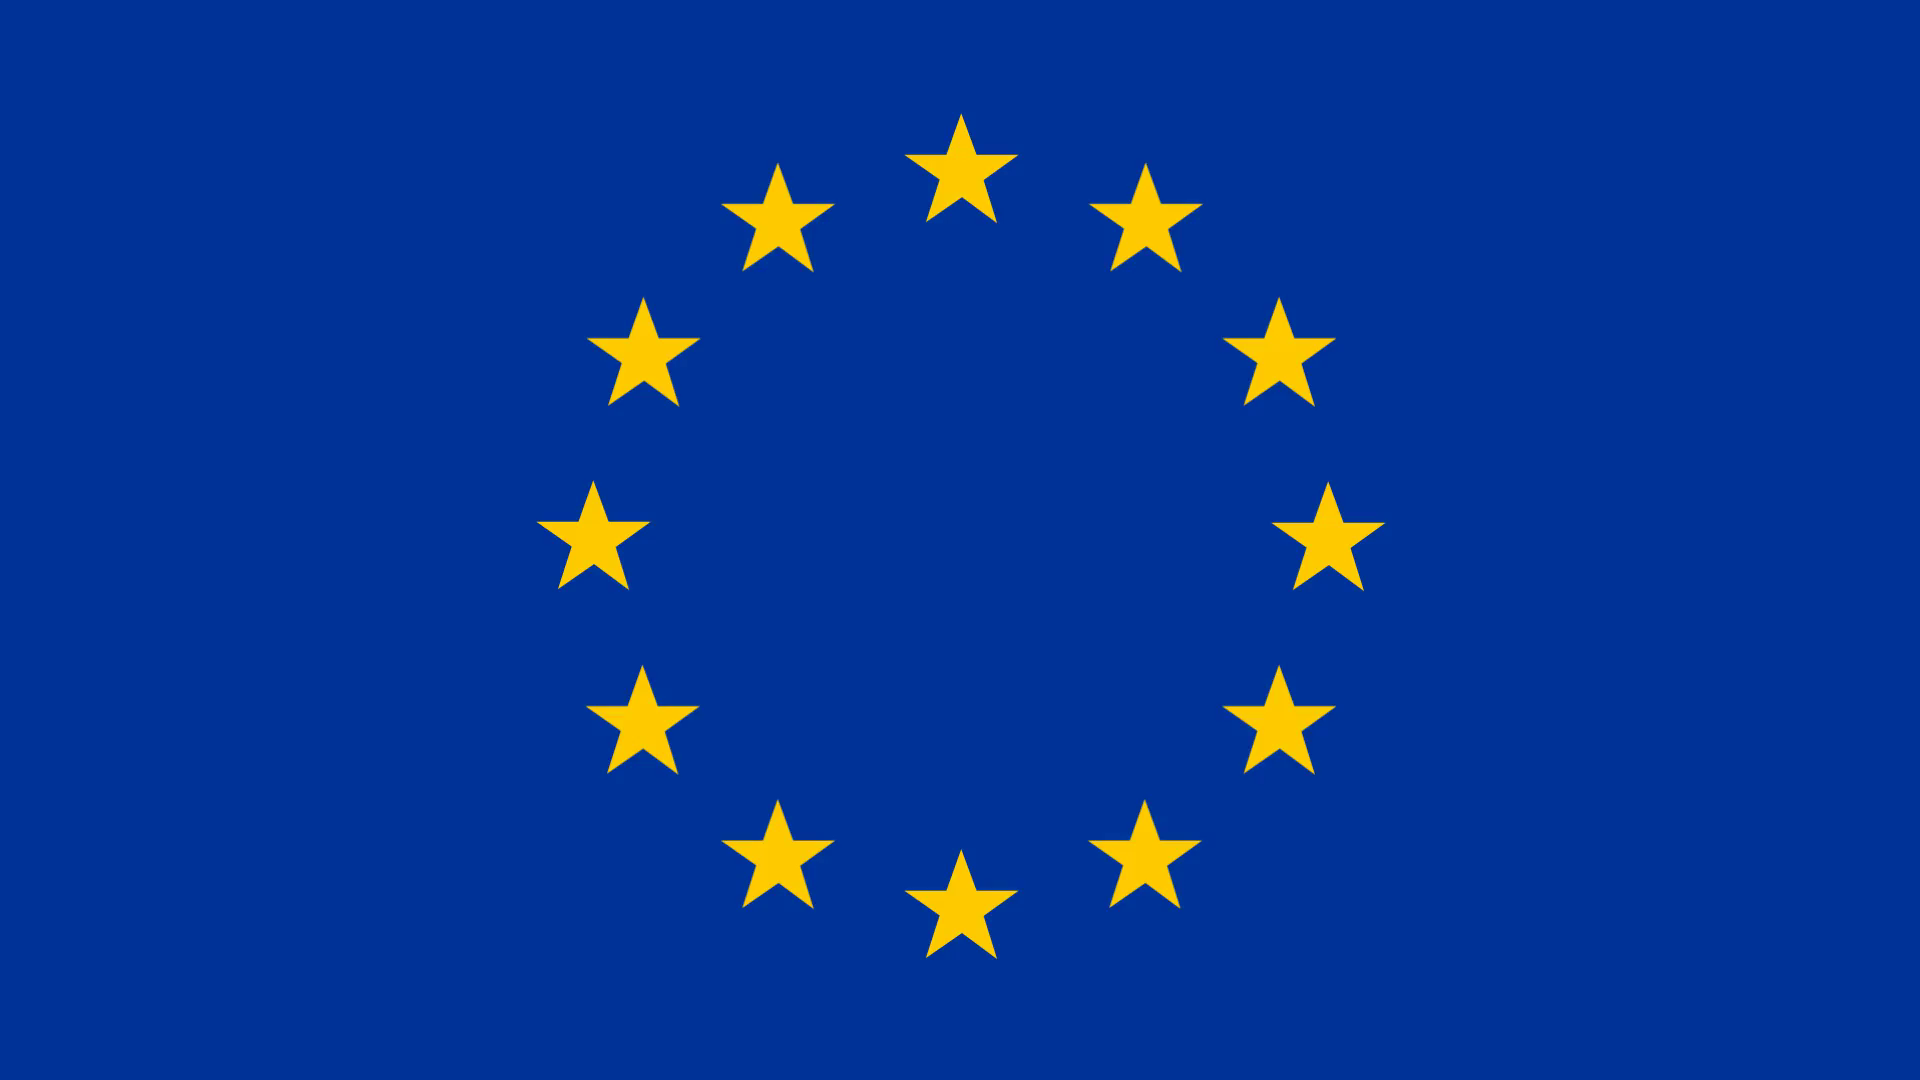 Buy European Union Flags Europe Flags For Sale High